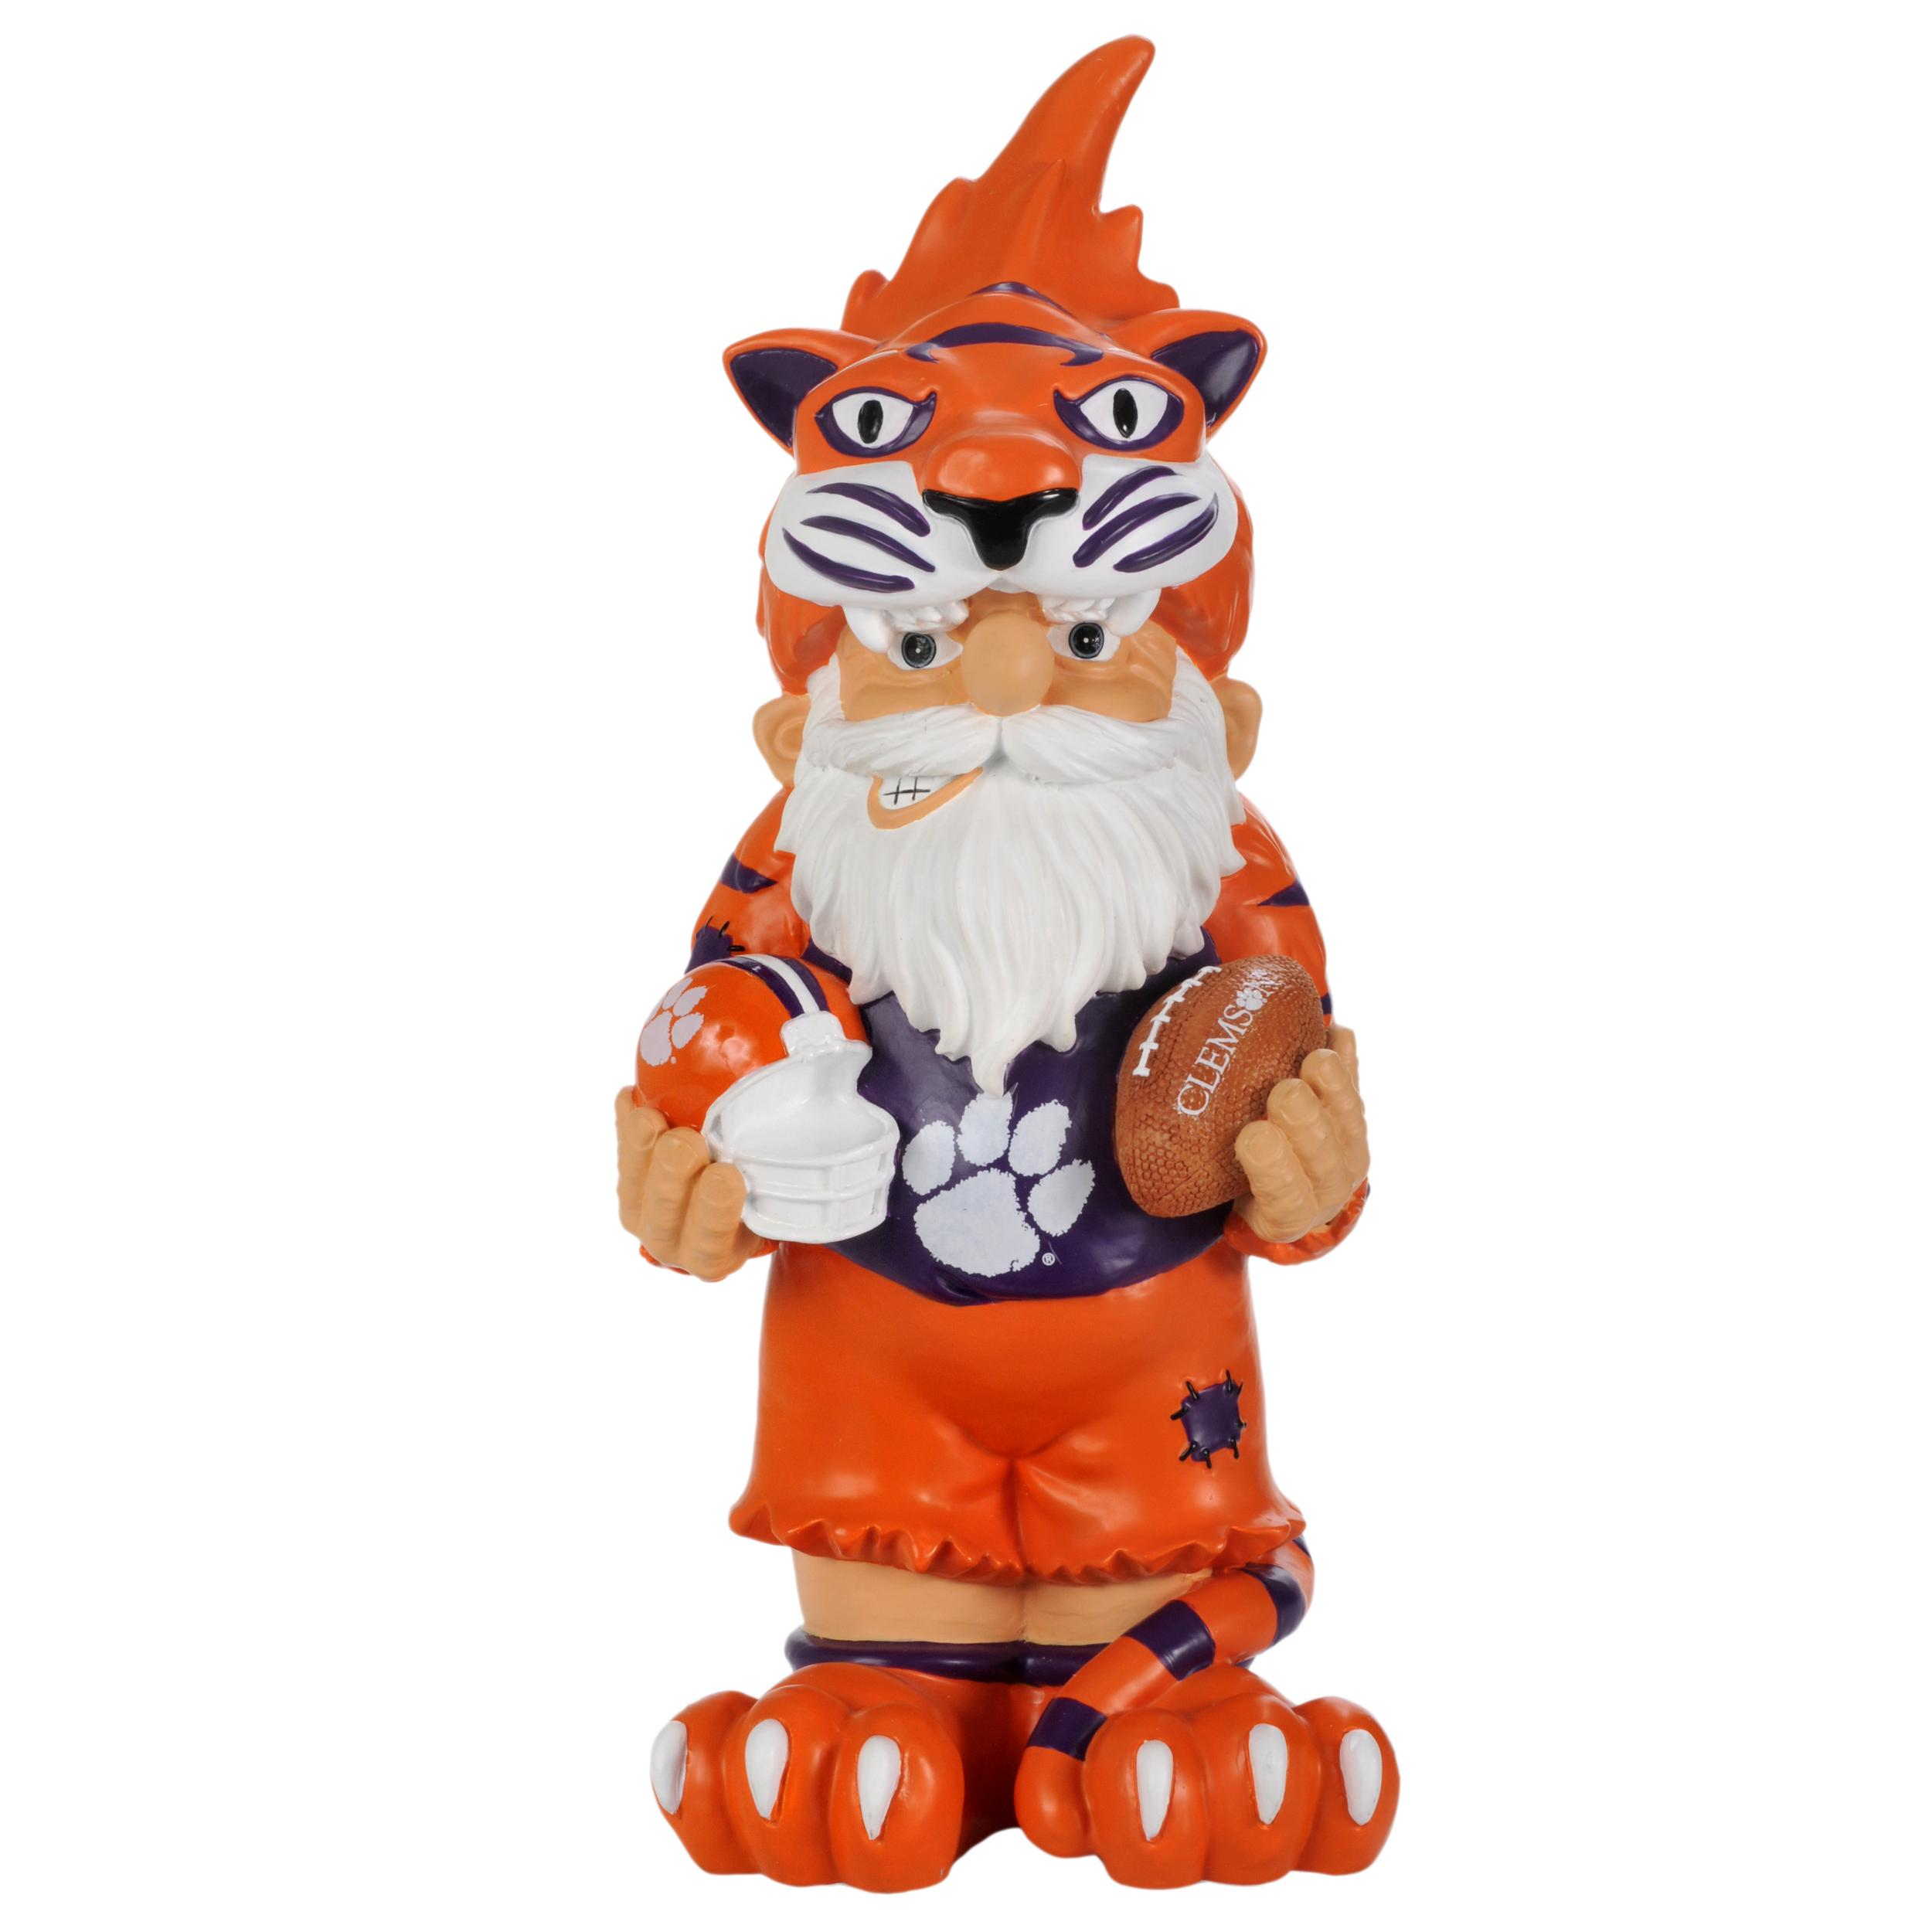 Clemson Tigers 11-inch Thematic Garden Gnome